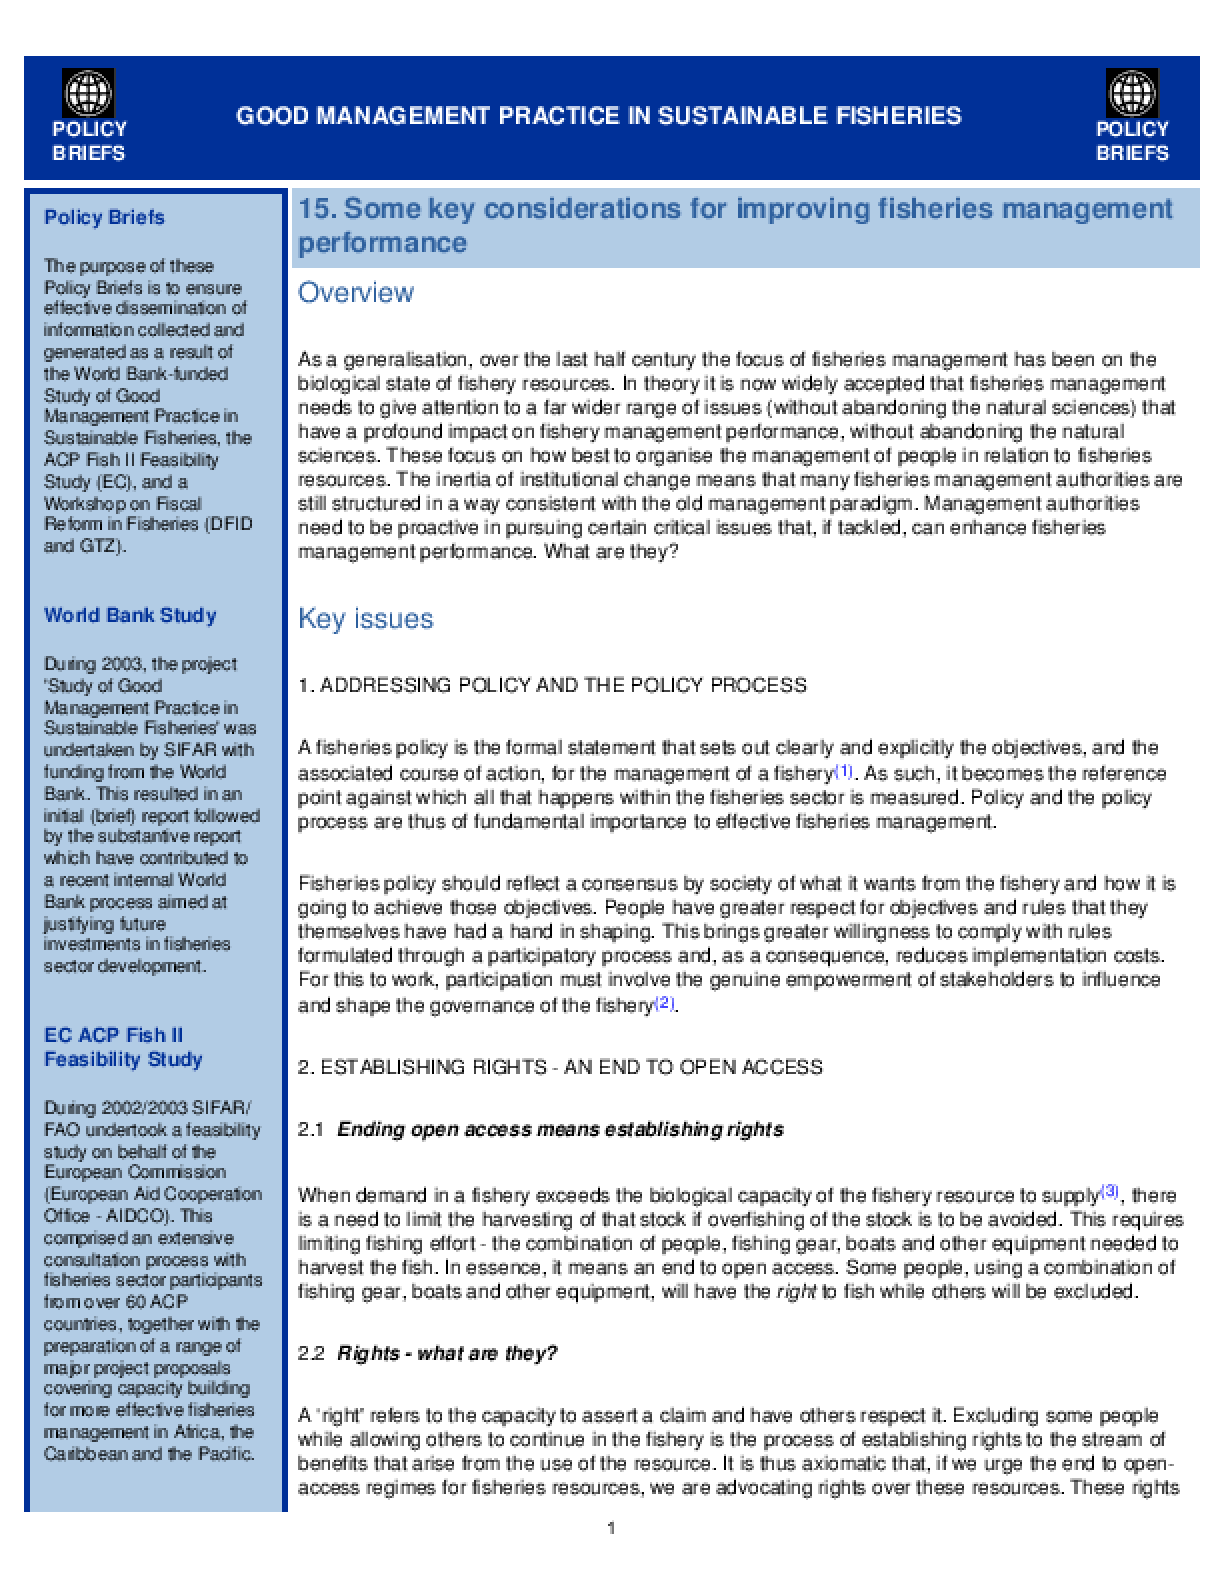 Good Management Practice in Sustainable Fisheries: Some Key Considerations for Improving Fisheries Management Performance